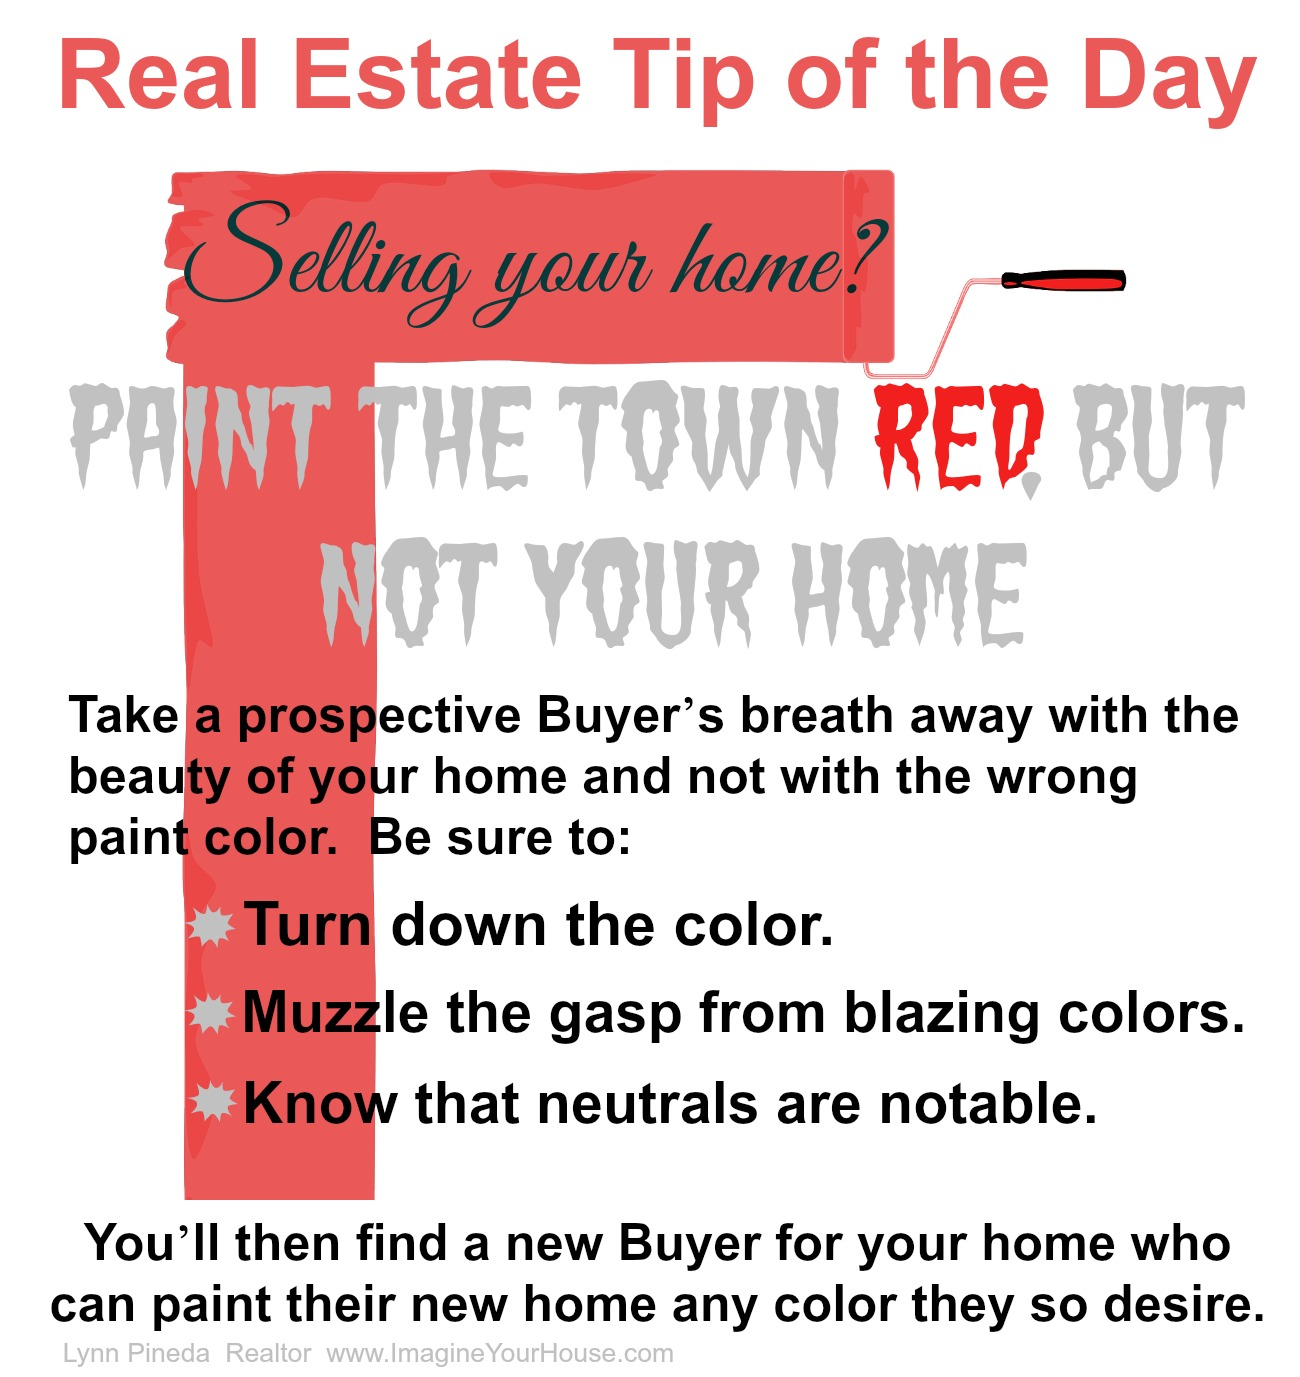 Real-Estate-Tip-of-the-Day-Nov-27-2013-IYH.jpg